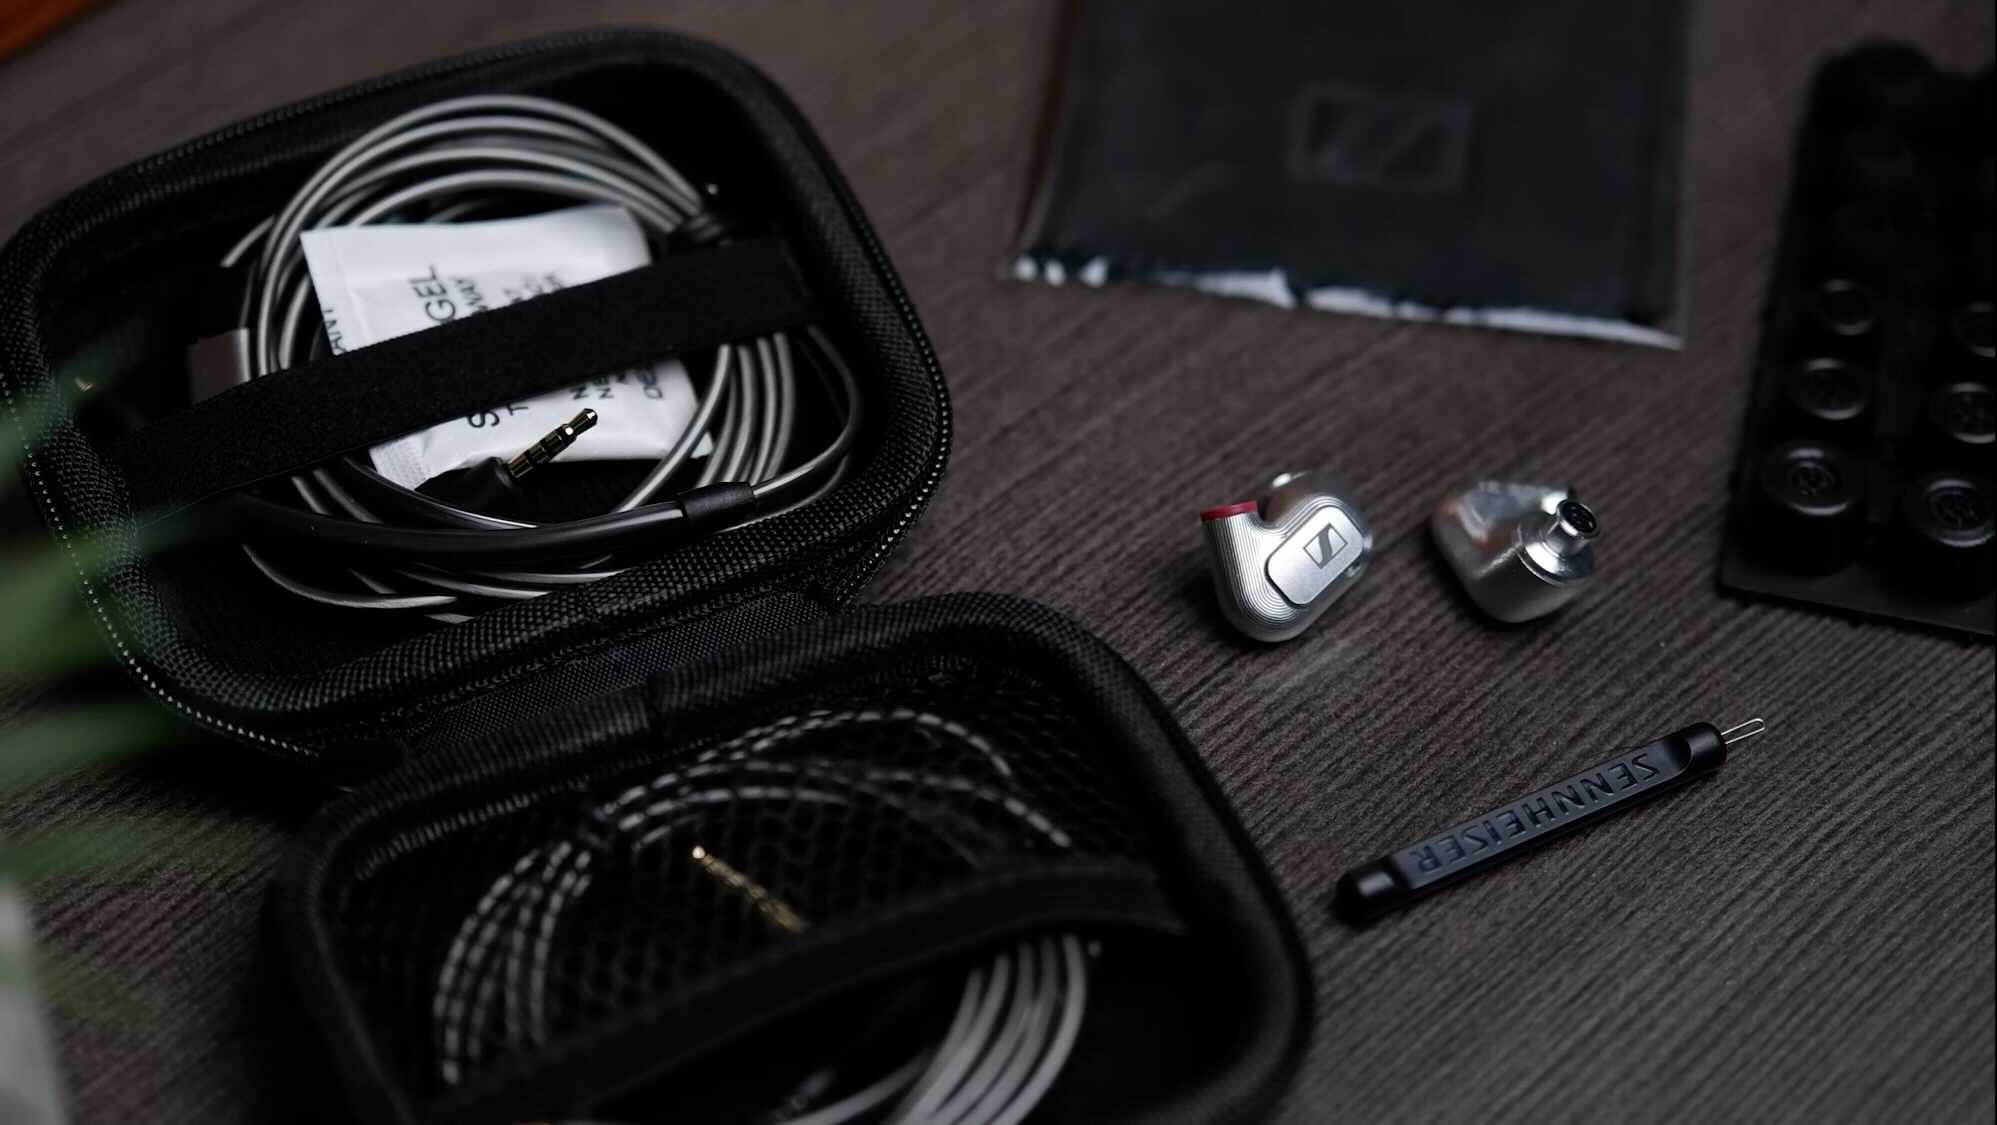 https://www.headphones.com/community/reviews-learning-and-news/sennheiser-ie-900-review-flagship-dynamic-driver-iem